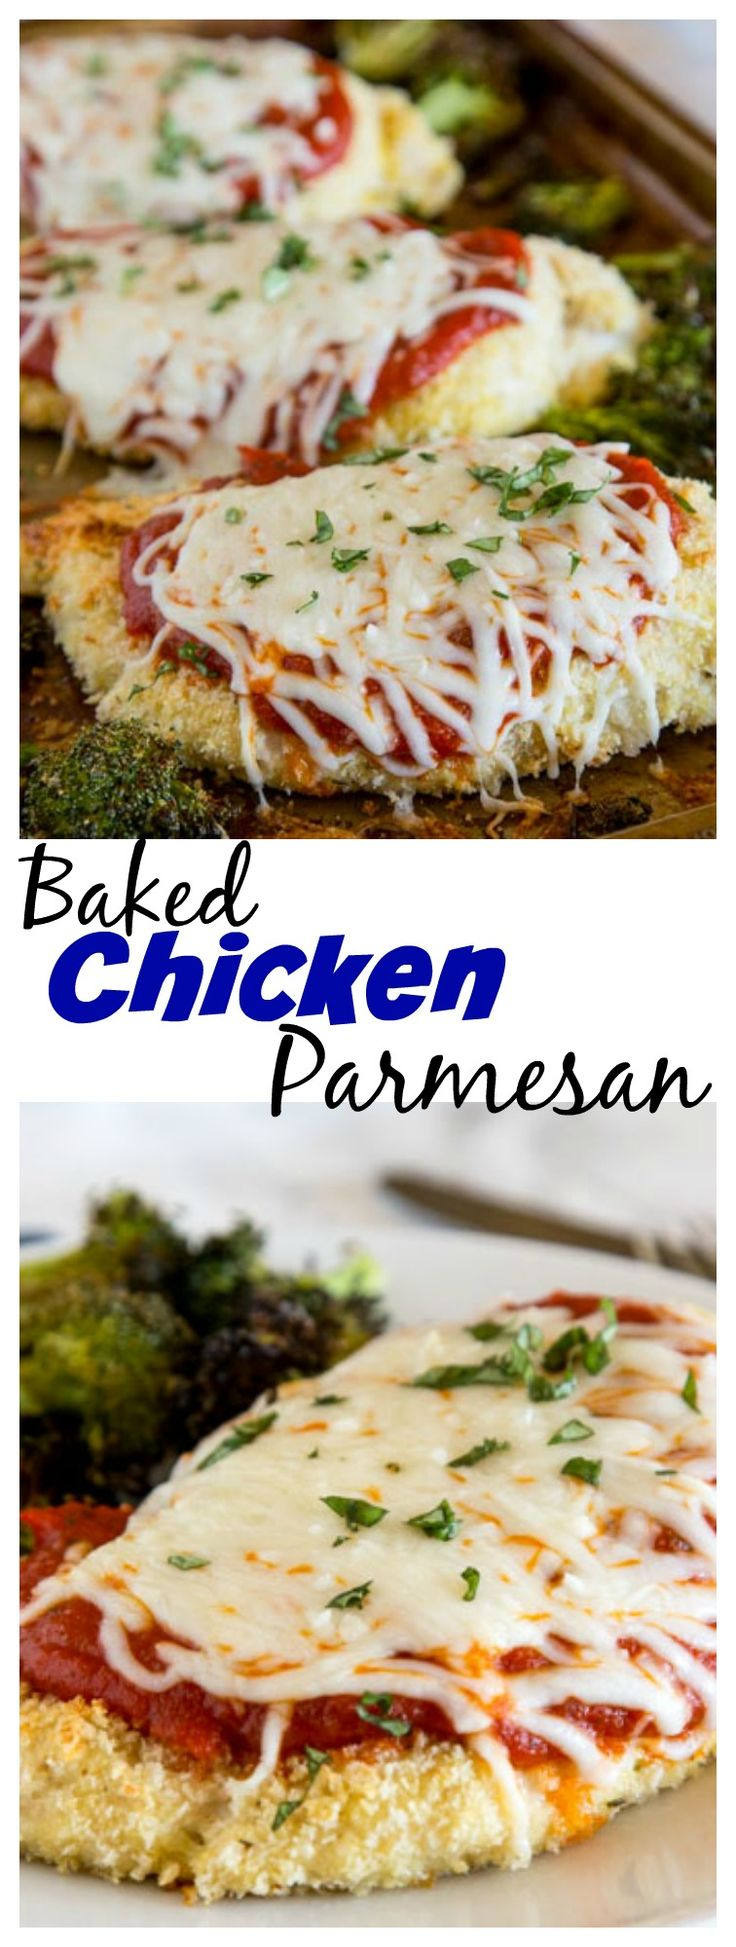 Baked Chicken Parmesan with Roasted Broccoli – a healthier version of chicken Parmesan all made on one baking sheet! Super easy, quick and definitely family friendly.